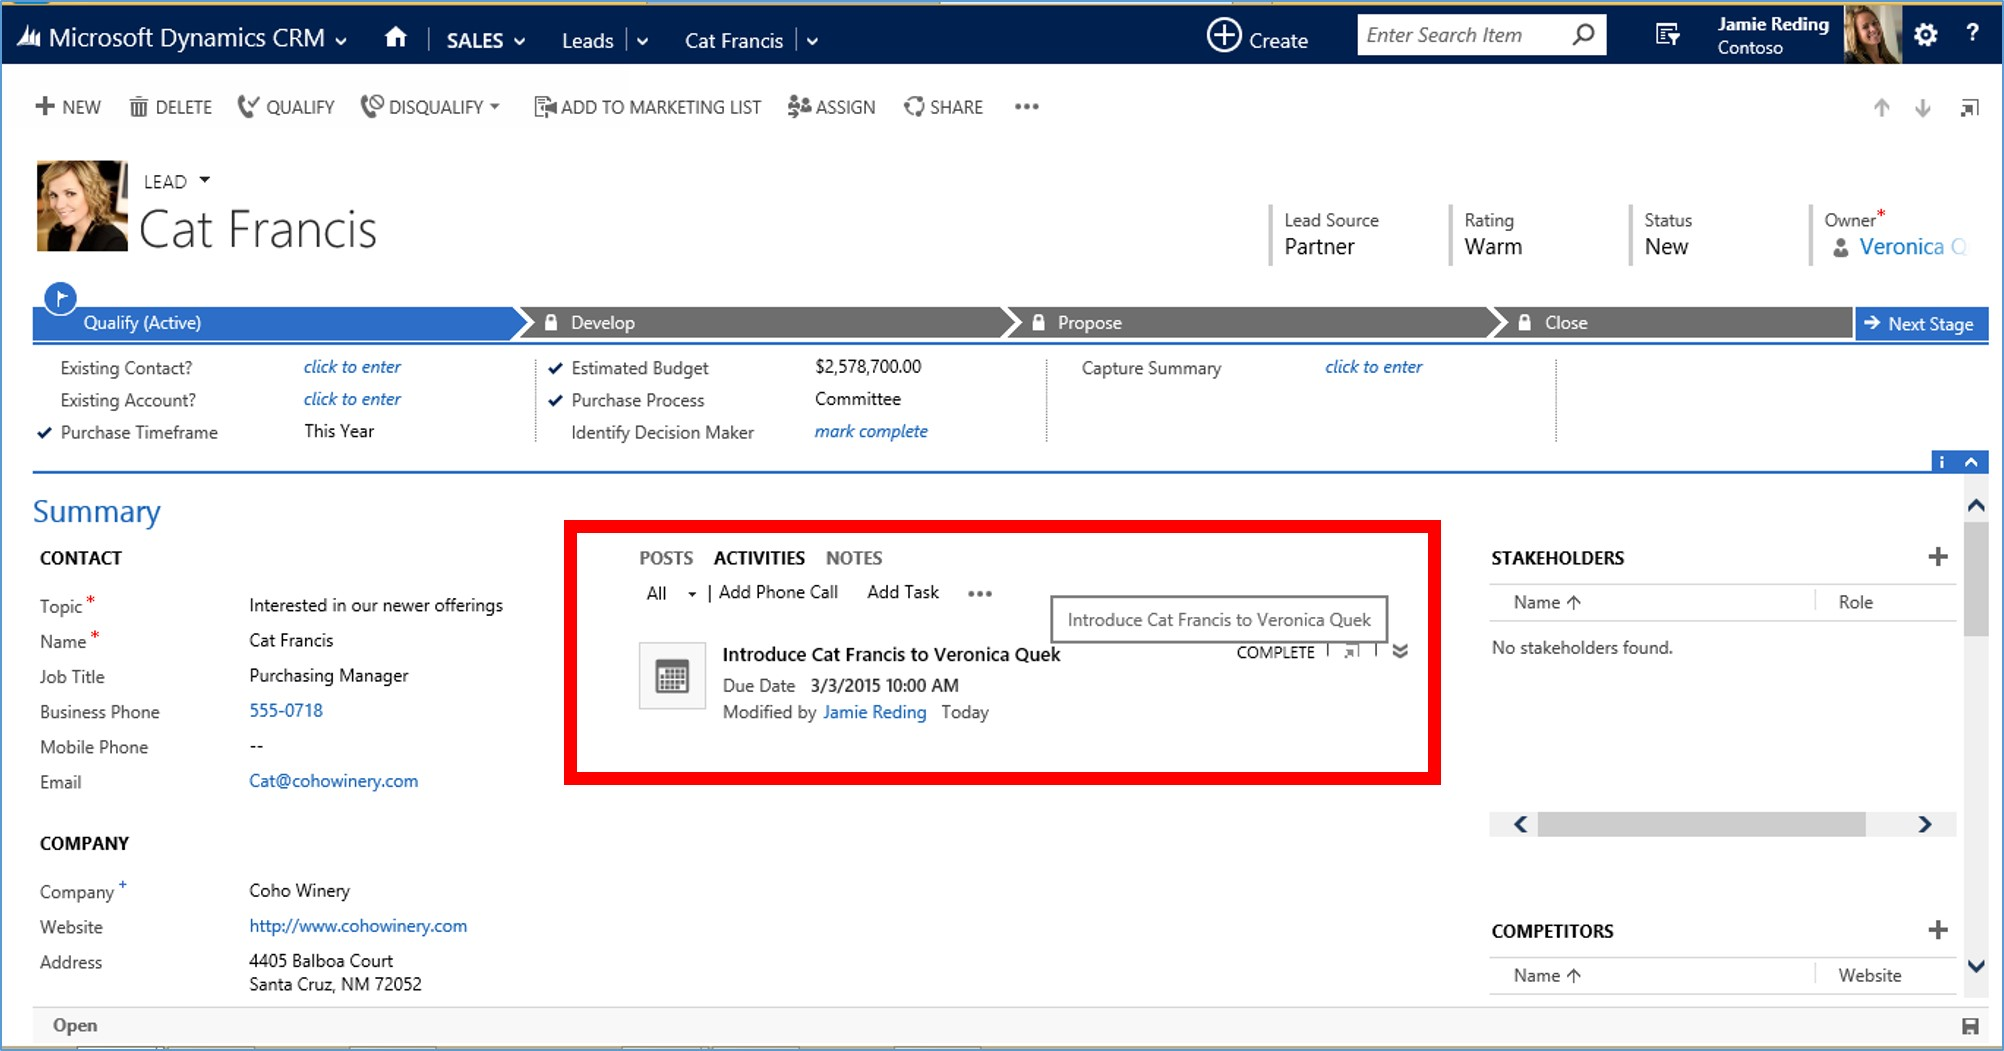 Microsoft Dynamics CRM 2015 Activity Records part 2 image5